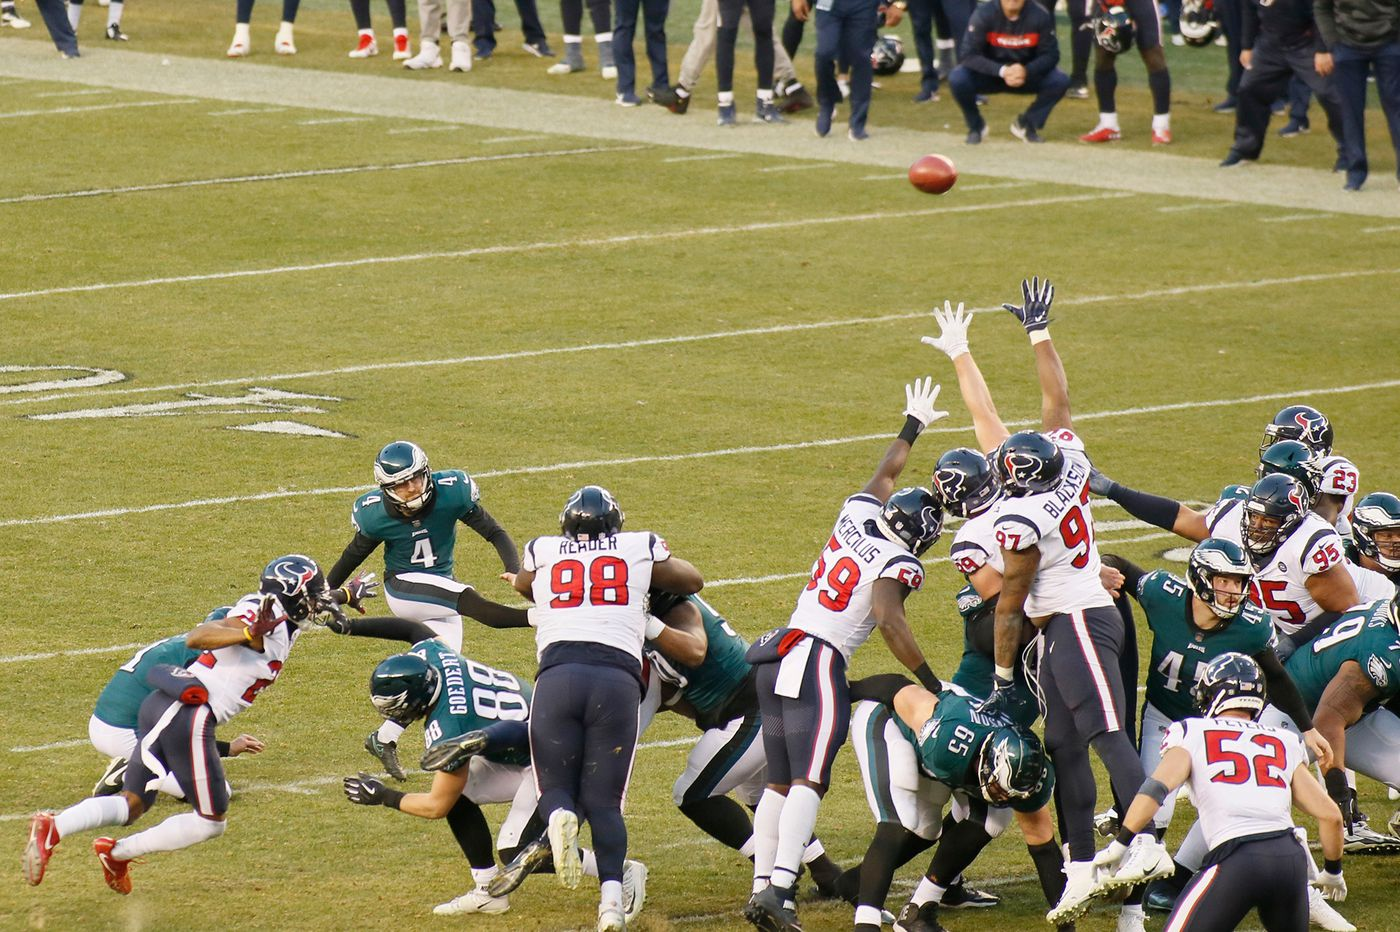 Inside the Eagles' game-winning drive vs. the Texans: 'This was a special one tonight'